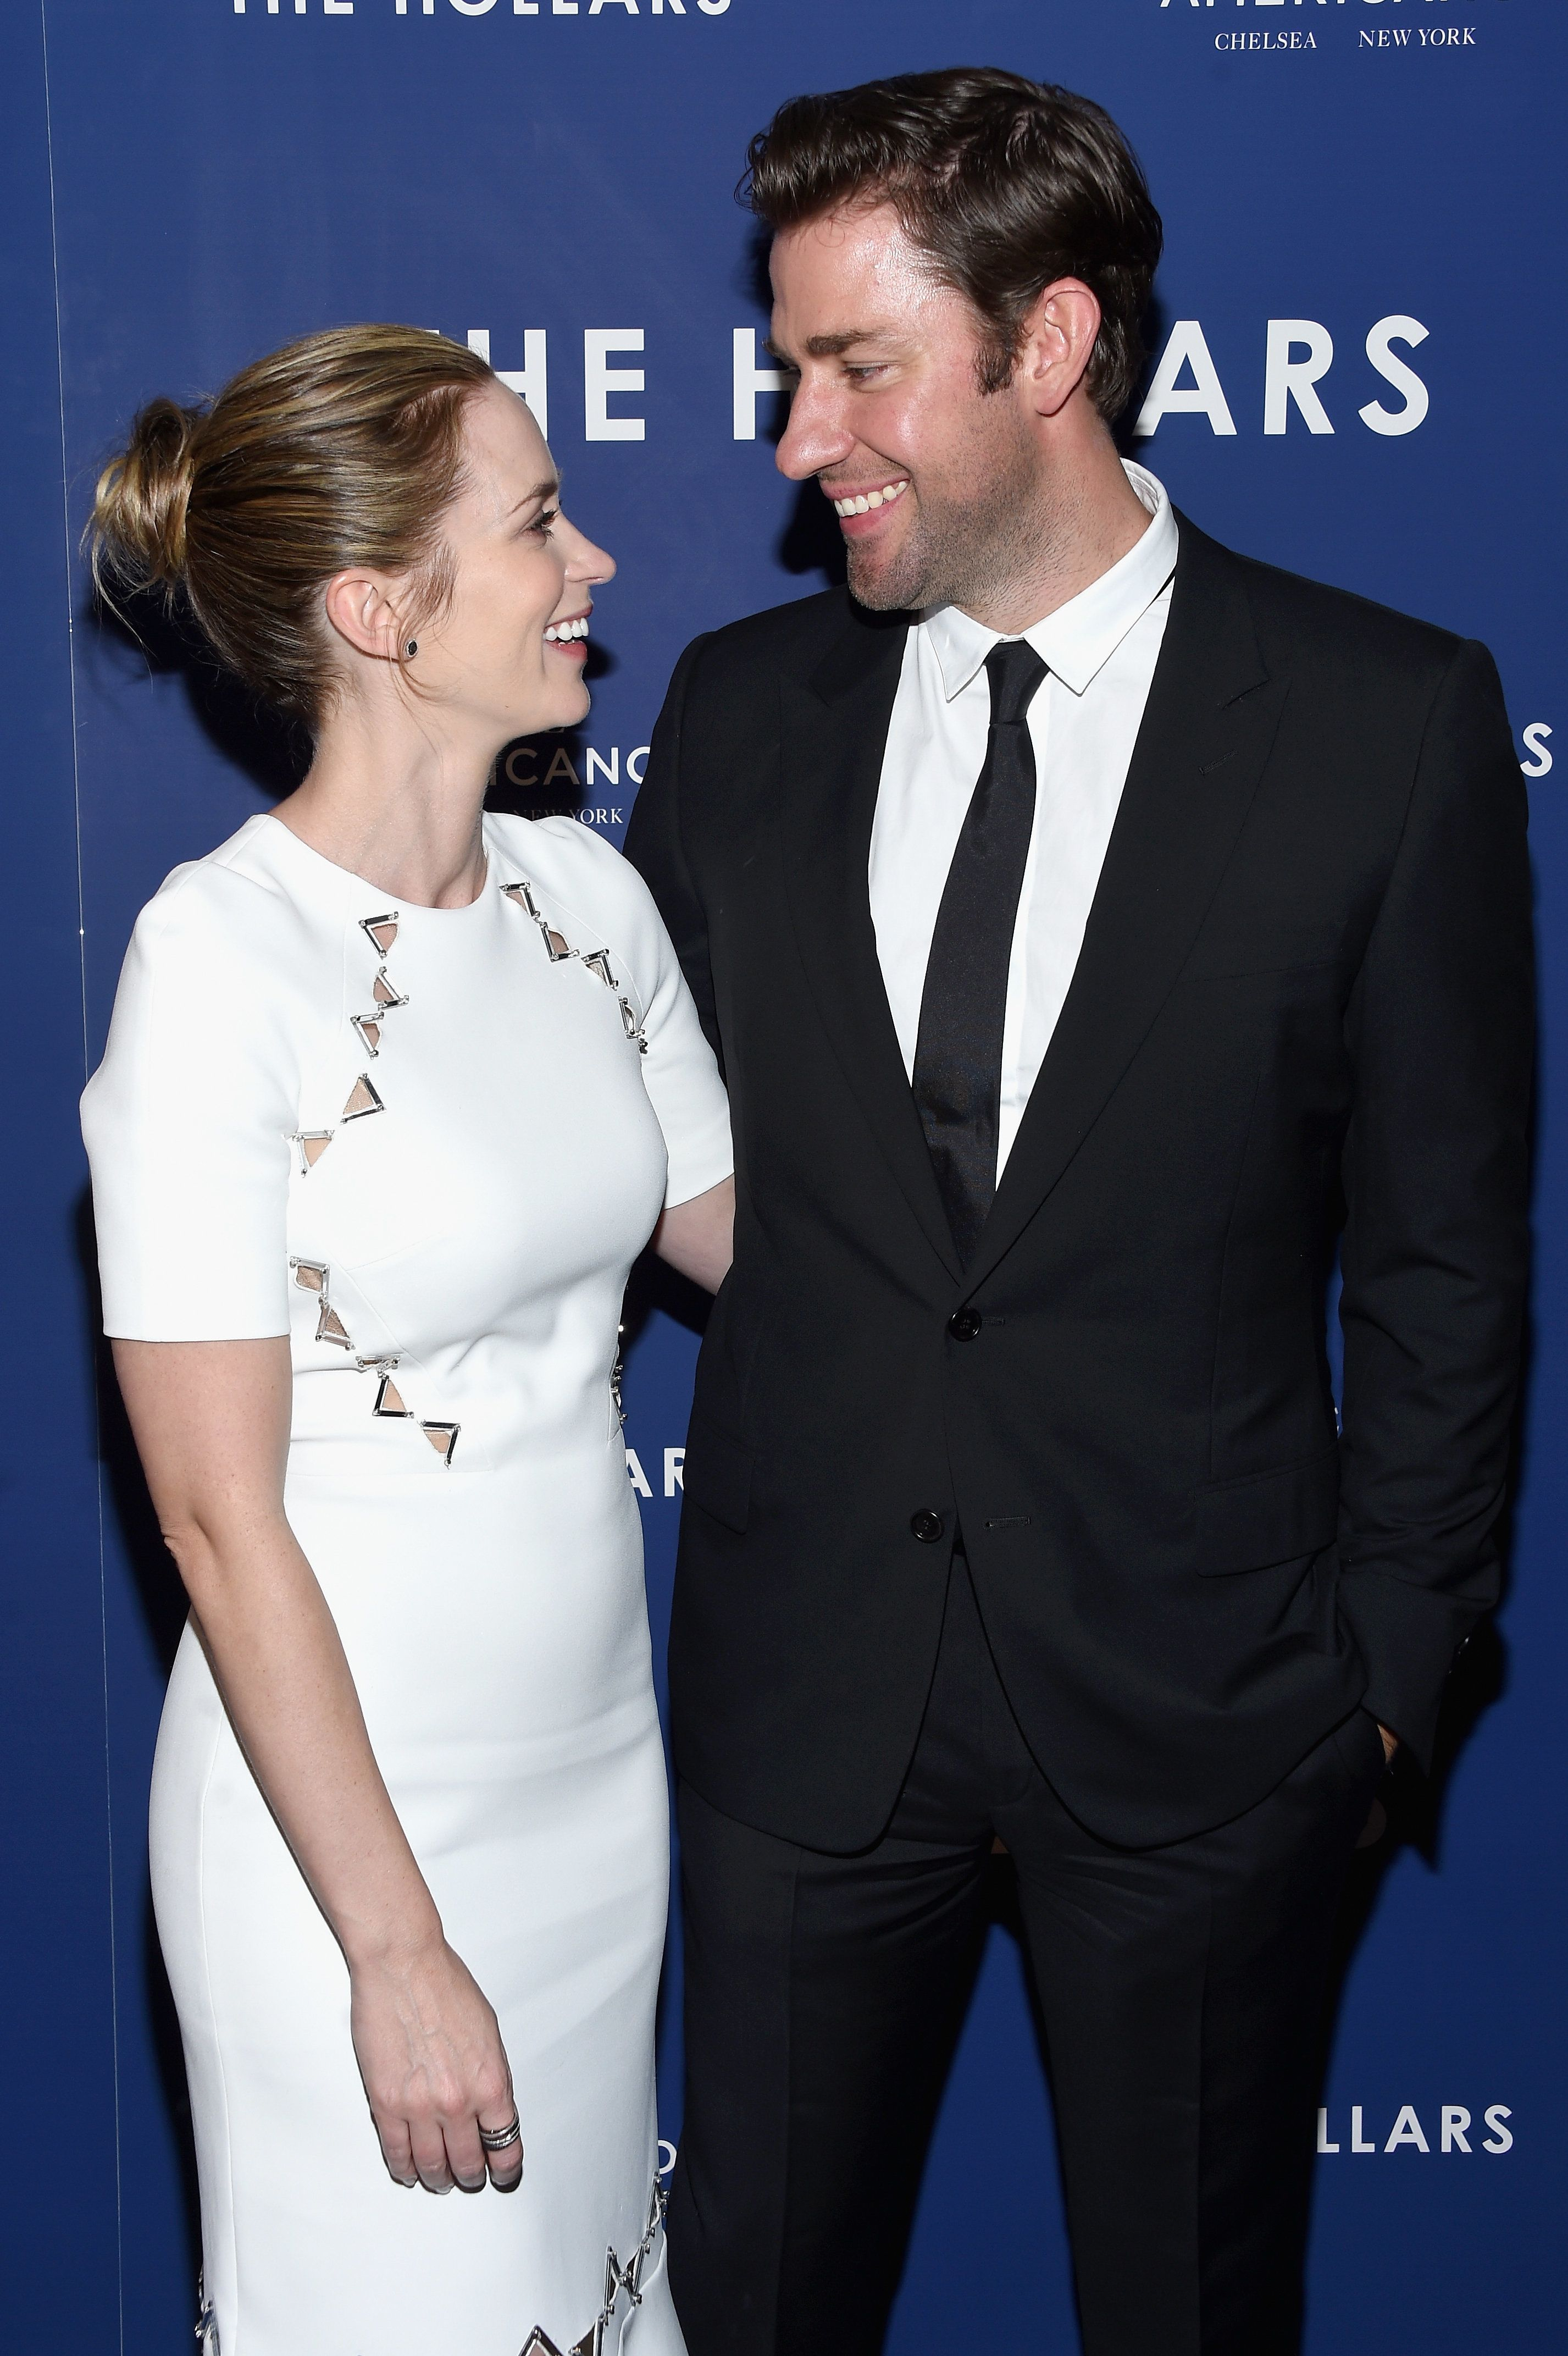 NEW YORK, NY - AUGUST 18:  Emily Blunt and John Krasinski attend 'The Hollars' New York Screening at Cinepolis Chelsea on August 18, 2016 in New York City.  (Photo by Dimitrios Kambouris/Getty Images)